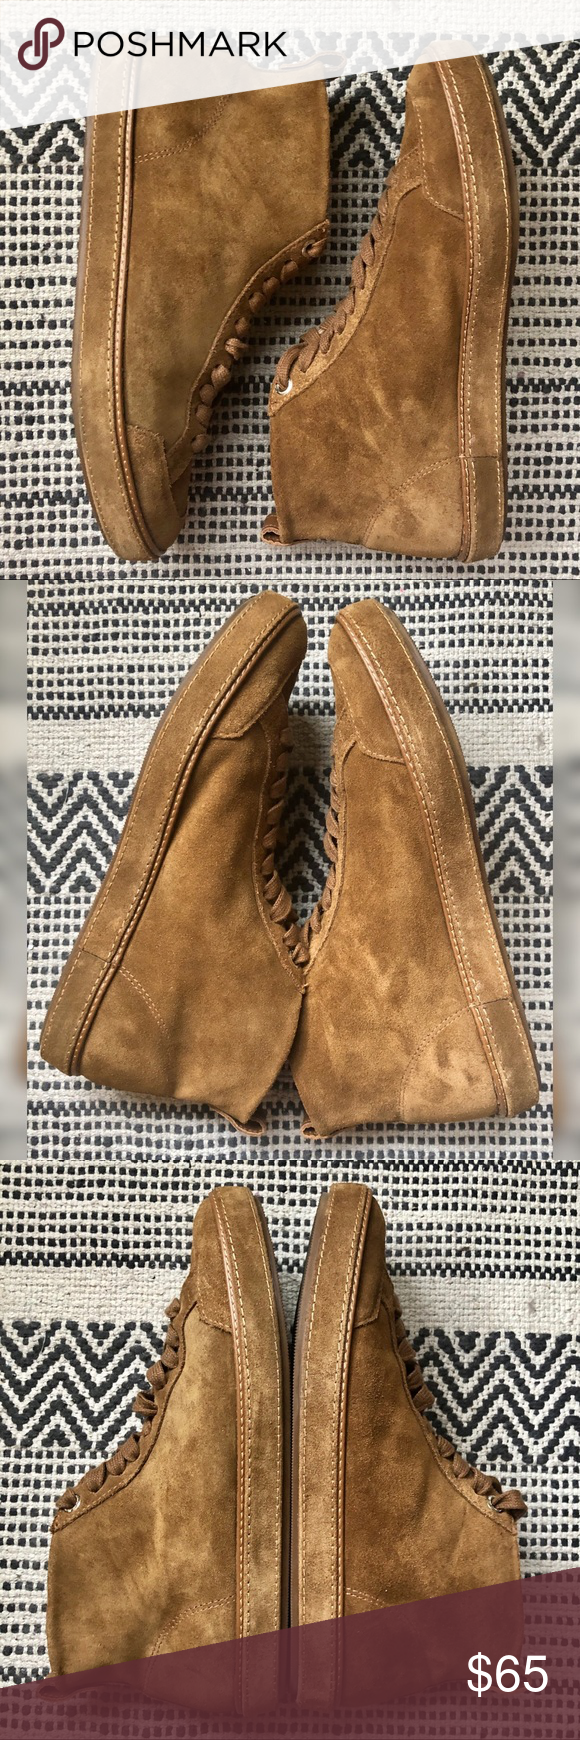 MASSIMO DUTTI Tan Suede Hightop Sneakers in 2020 Suede